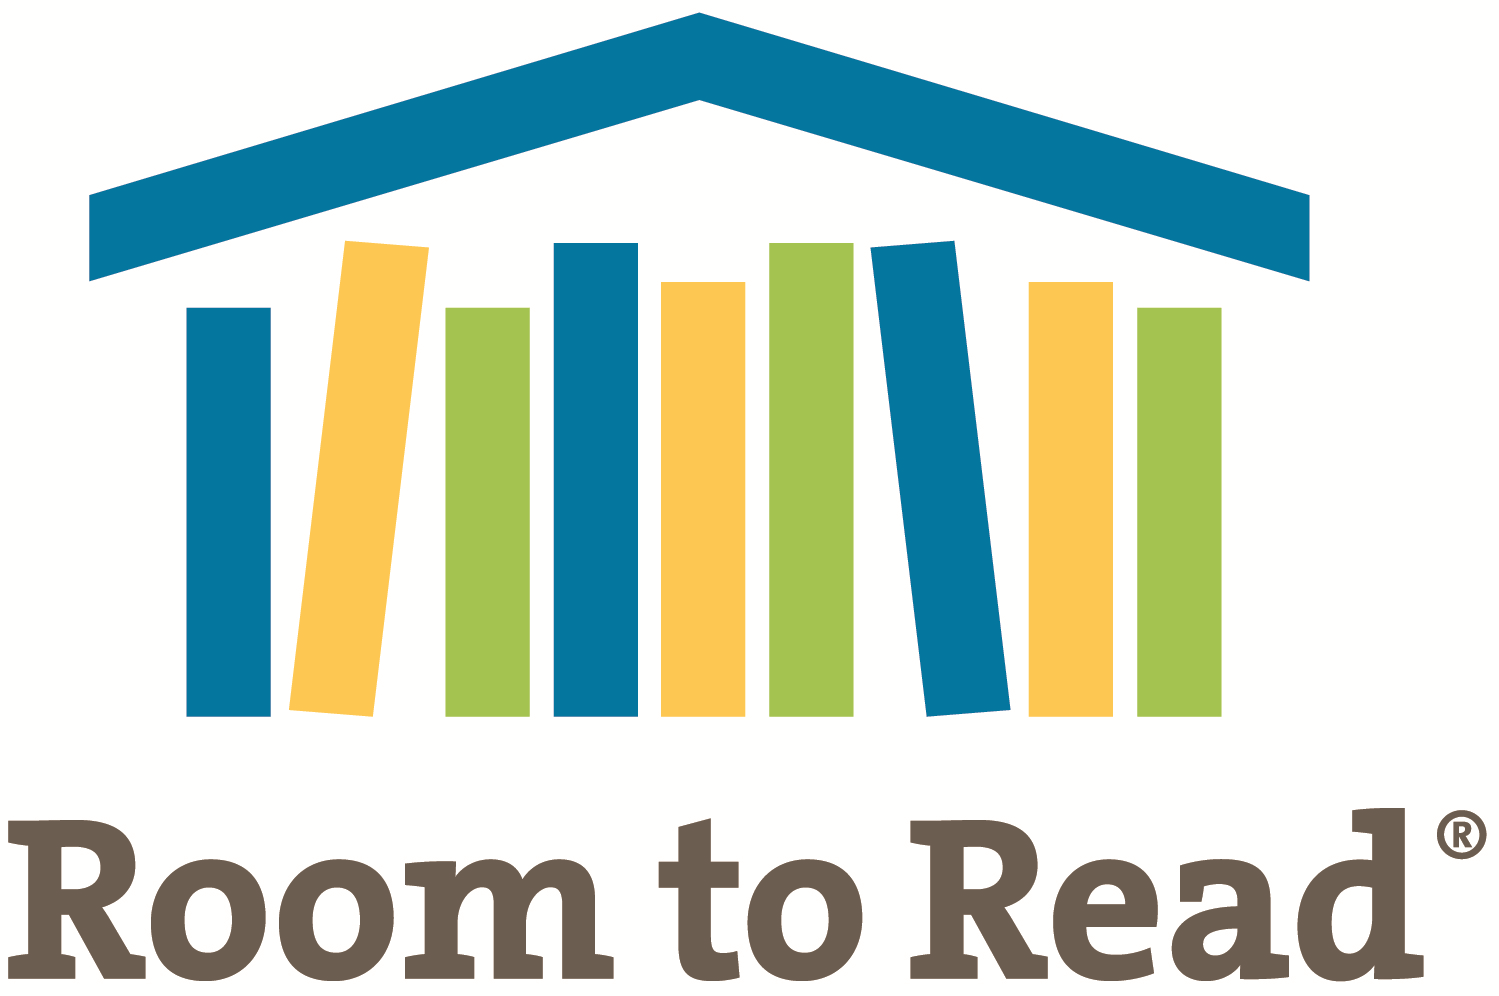 Room to Read, logo